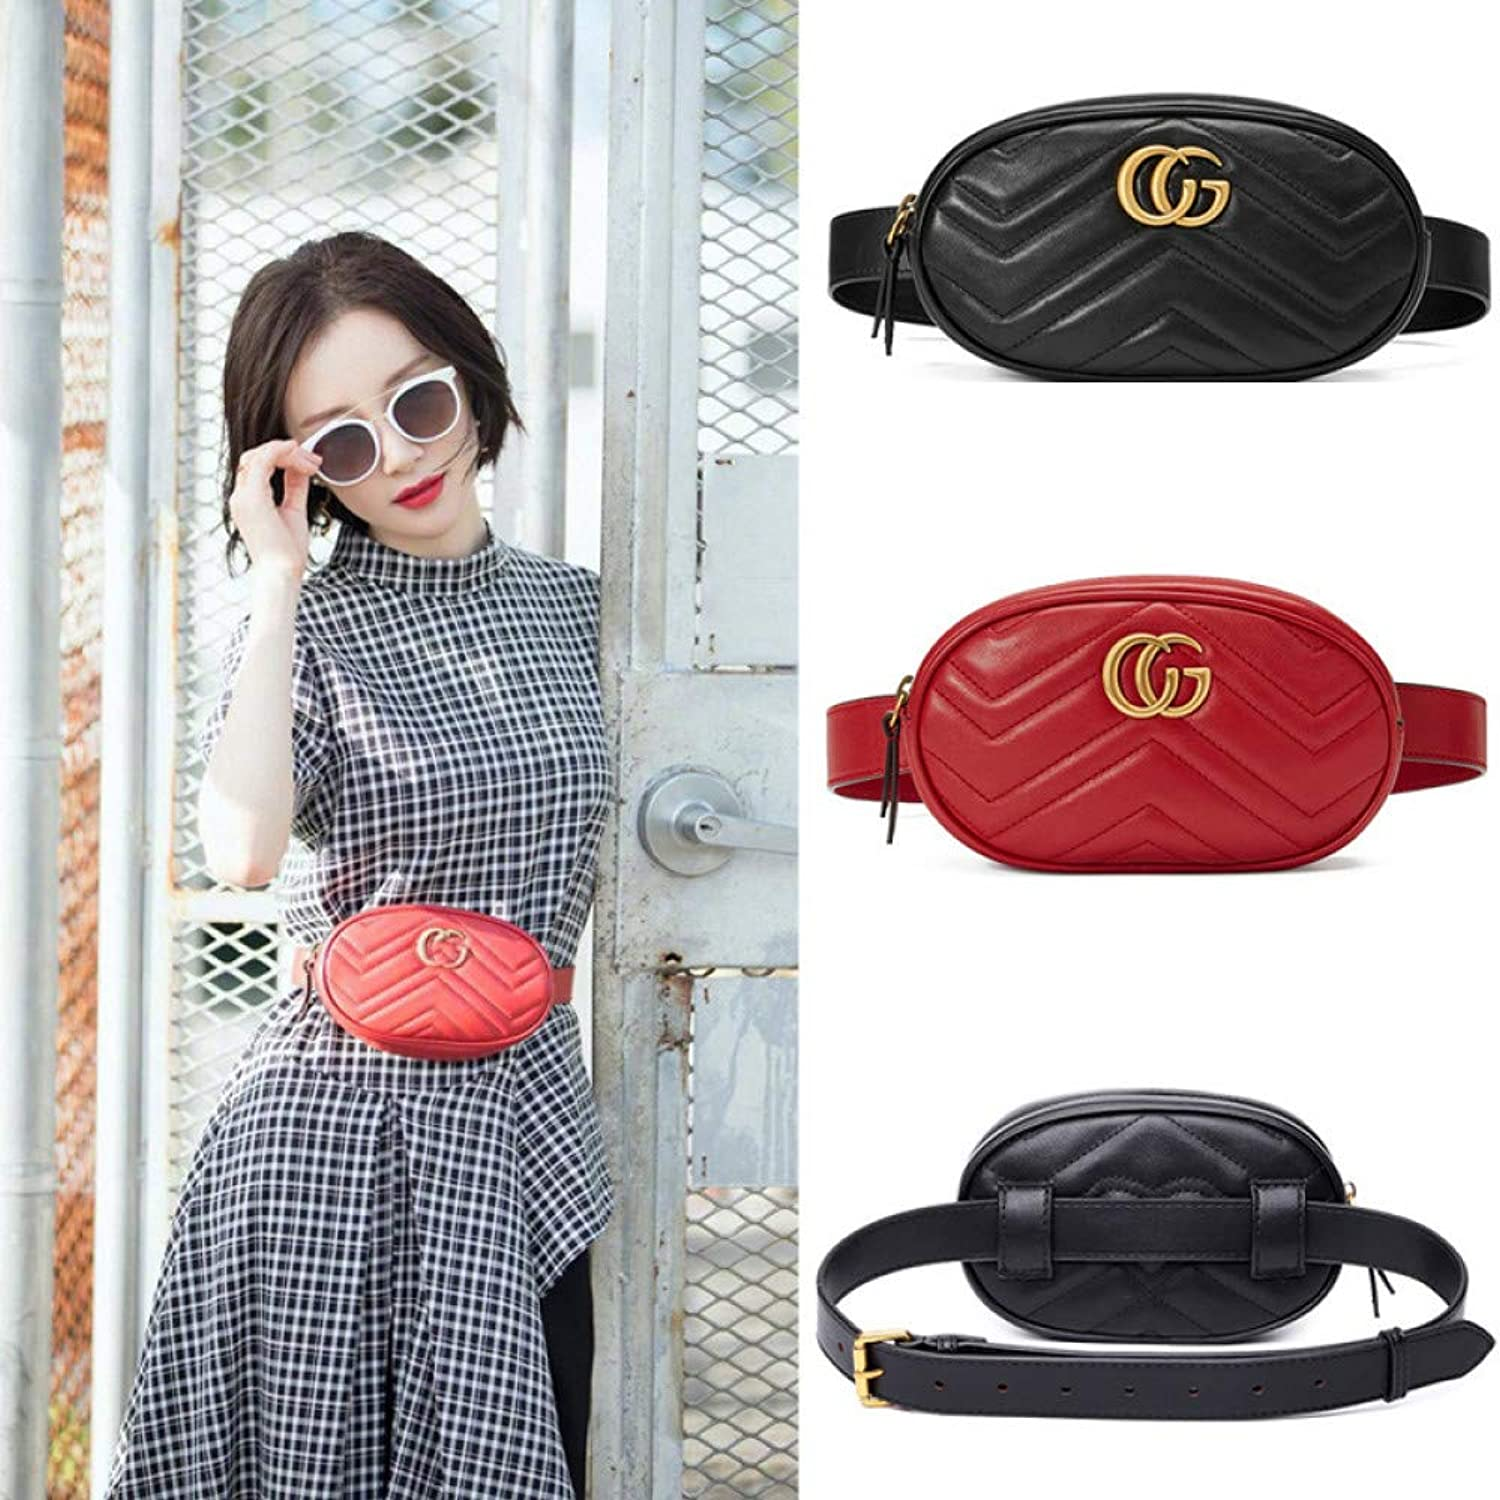 Unbekannt Ms. Pockets with The Same Paragraph Fashion Letters Letters Letters Large Capacity Casual Outdoor travel Pockets Ladies diagonal dual-use Multi-Function Pockets, schwarz, CG B07Q98T2QH  Leicht zu reinigende Oberfläche a7075a